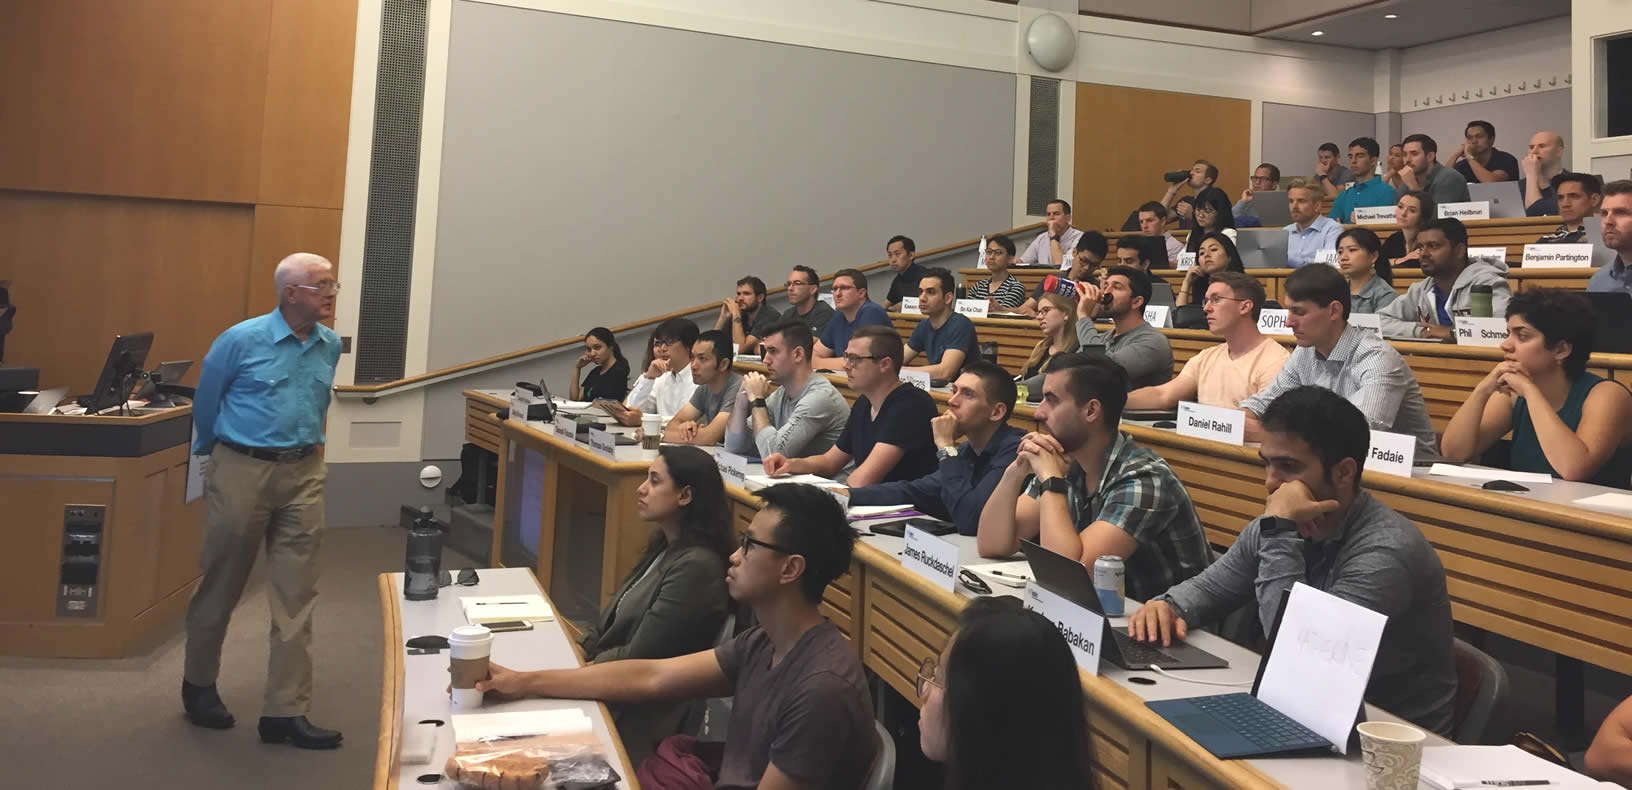 Professor Richard de Neufville standing and talking in front of a full classroom of students